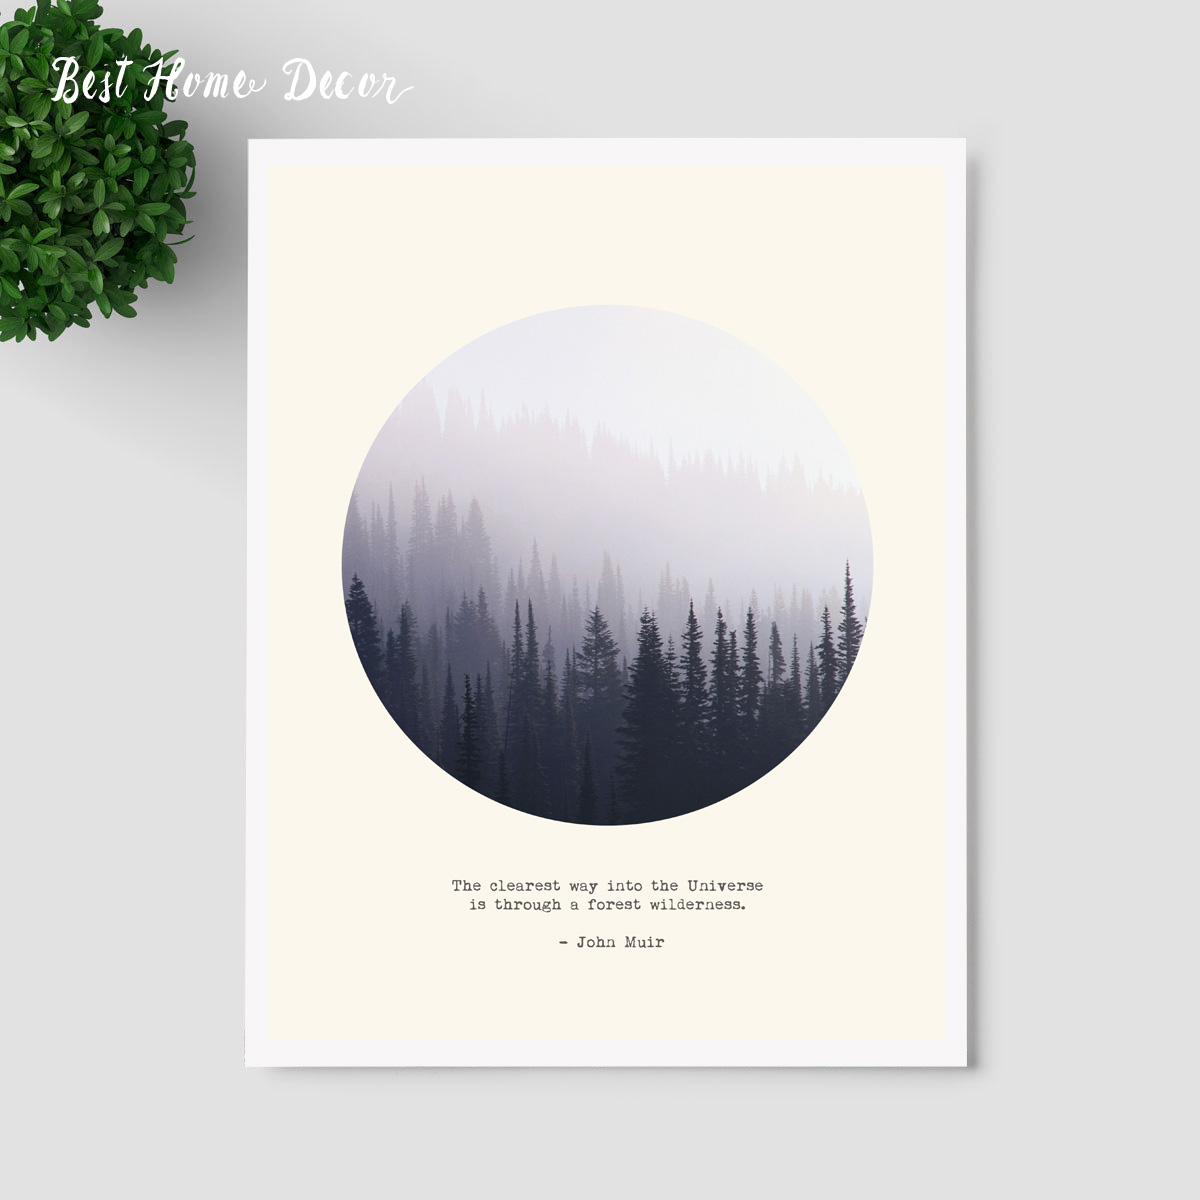 Forest Quotes Wall Hanging Art Pictures <font><b>The</b></font> Clearest Way <font><b>Into</b></font> <font><b>The</b></font> Universe Is Through A Forest <font><b>Wilderness</b></font> Quotes Art Print AP107